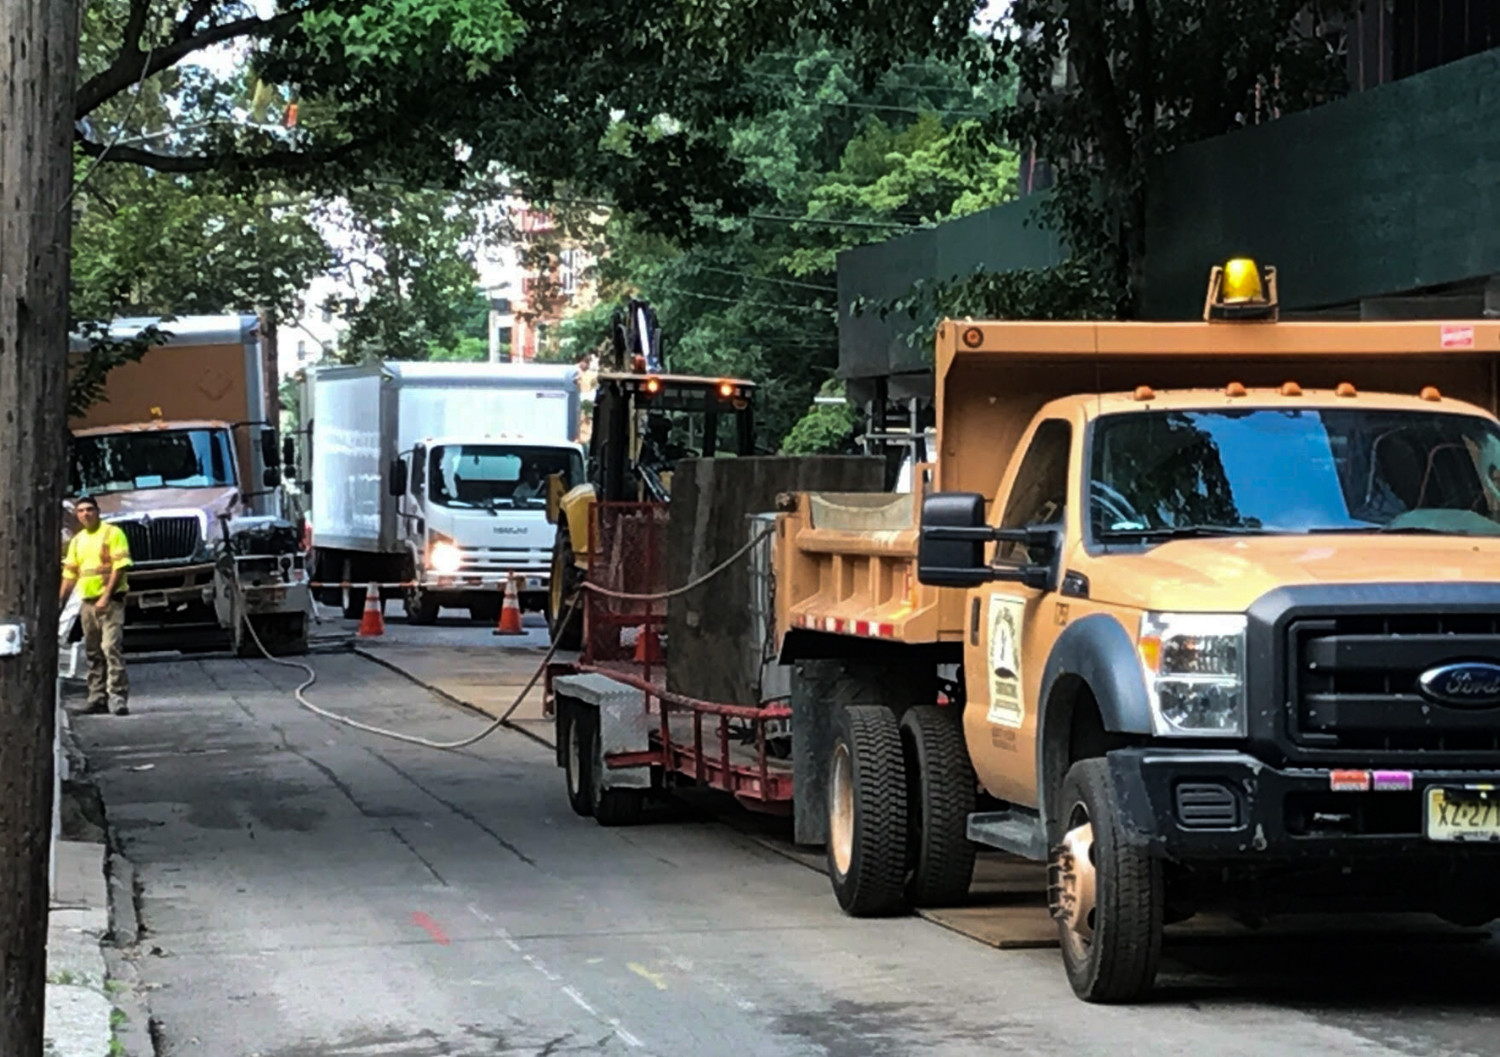 Con Edison's repair trucks take up a wide swath of space on residential streets, and have earned the ire of residents because of unannounced street closures.